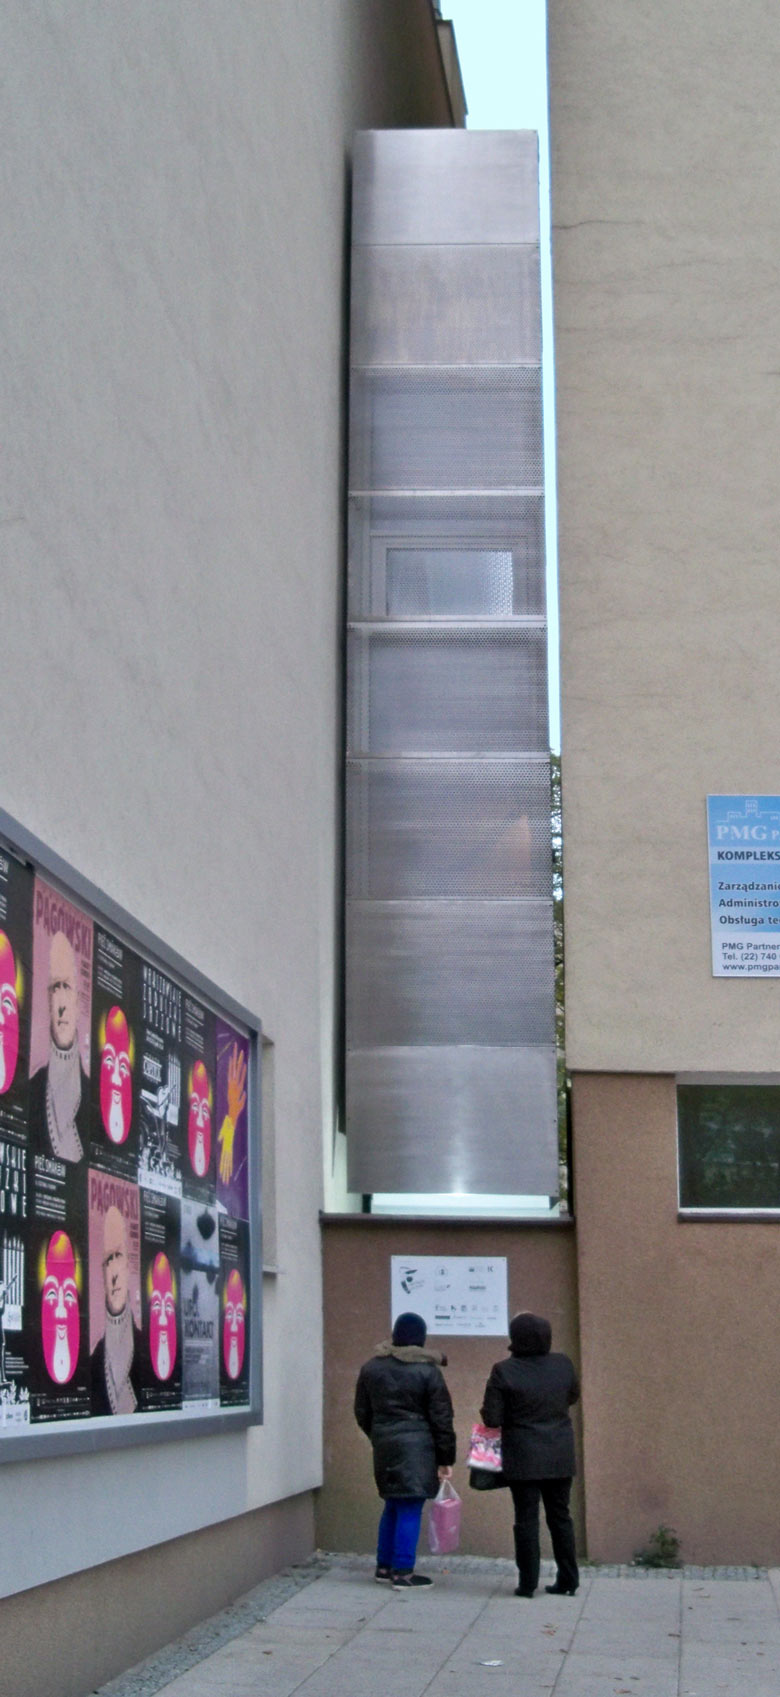 Exterior view of the Keret House the World's Narrowest Home in Warsaw by Jakub Szczesny